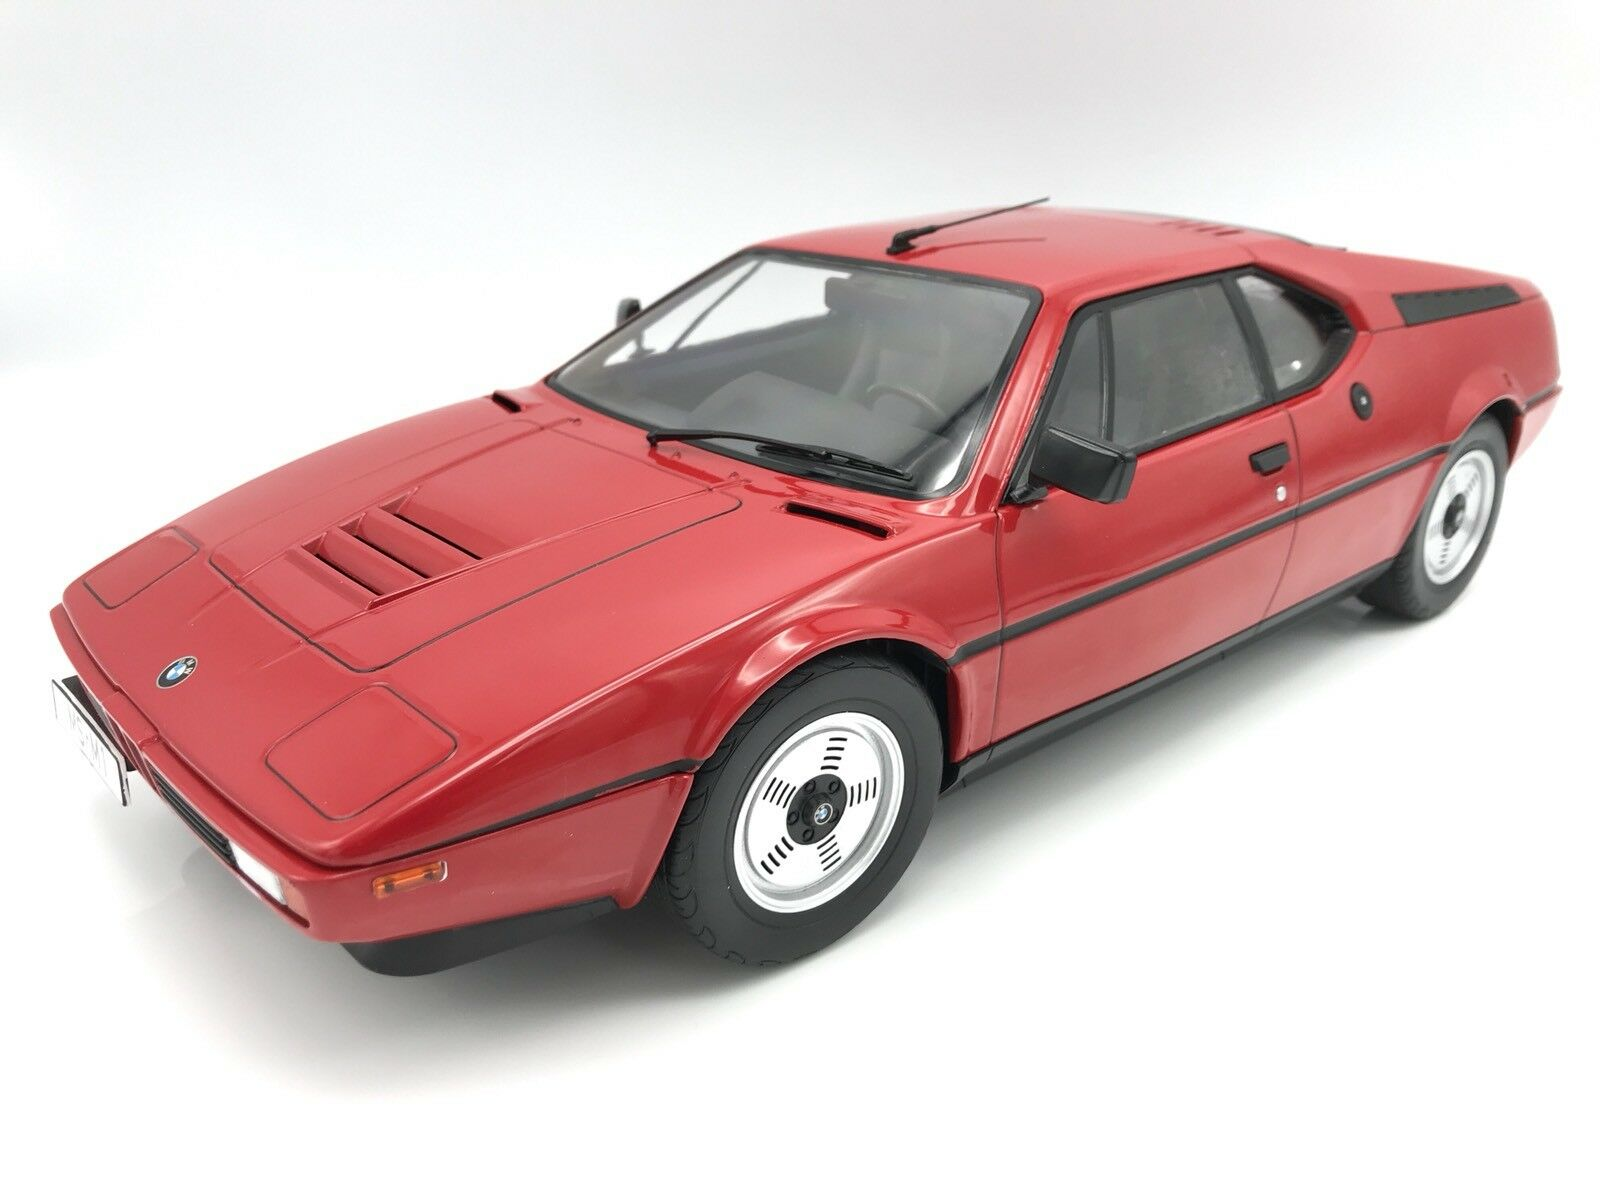 Bmw m1 Street (e26) 1978-Rouge - 1 12 KK-Scale    NEW